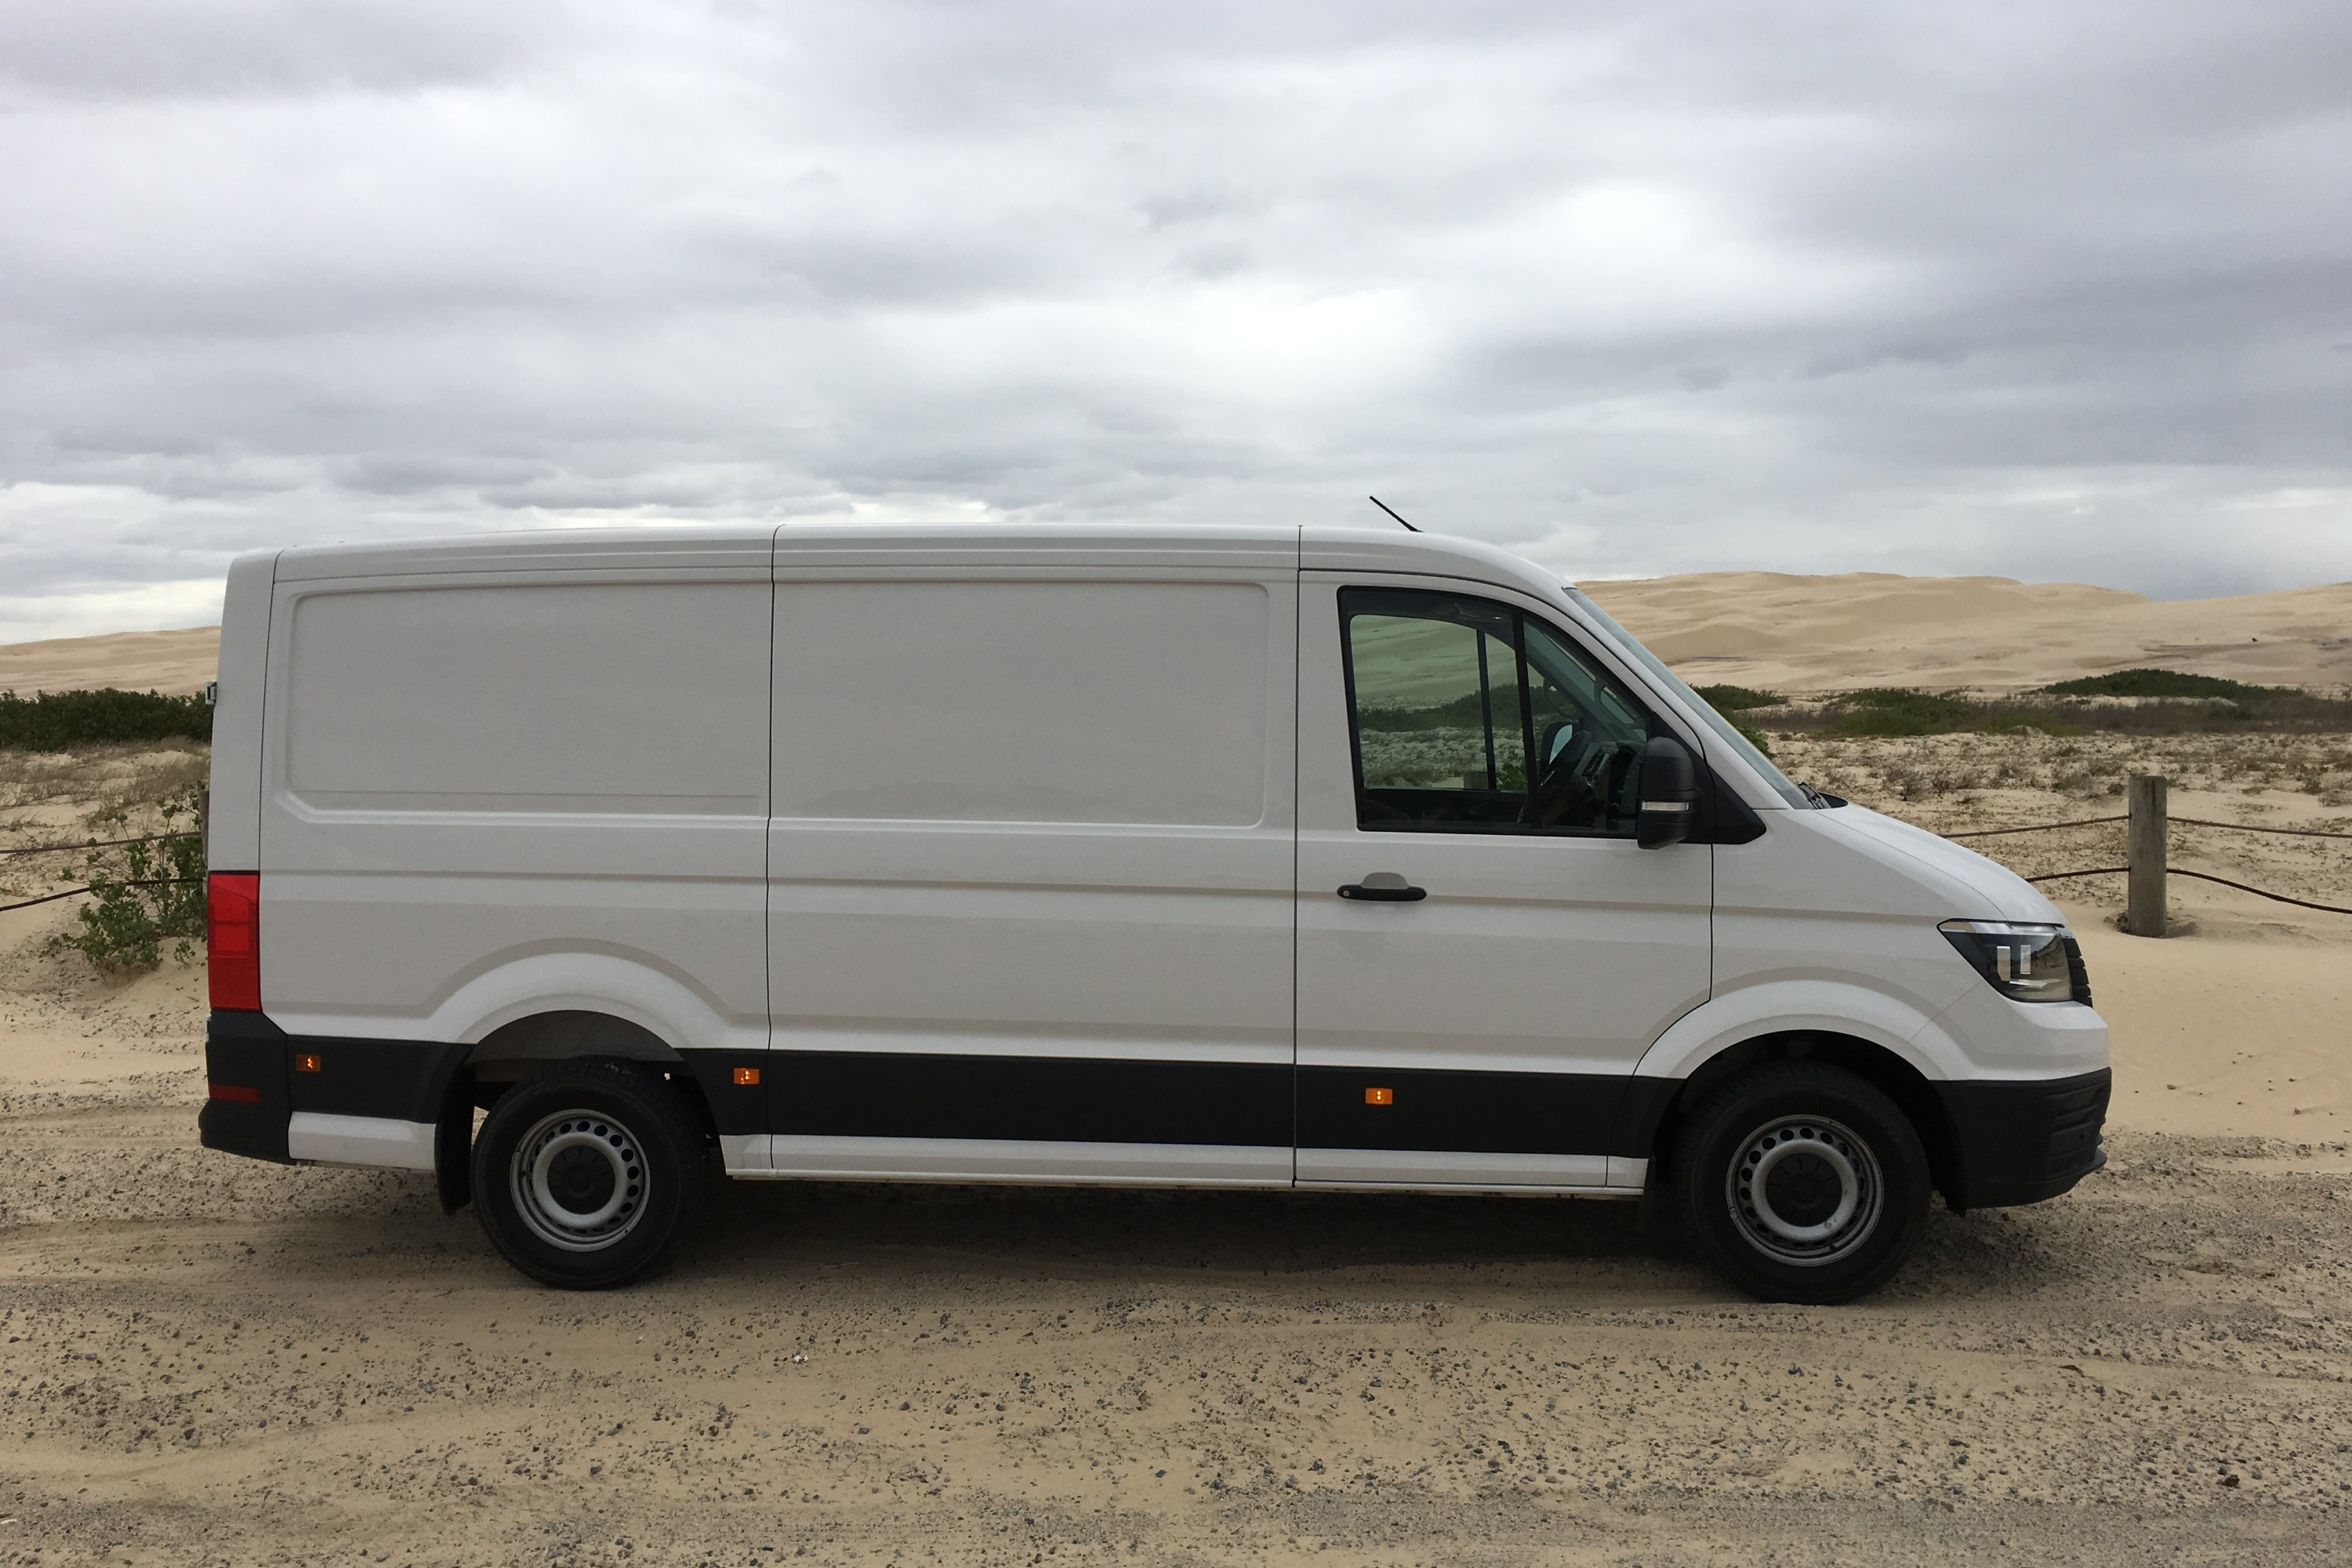 2019 VW Crafter 4MOTION 2 side profile